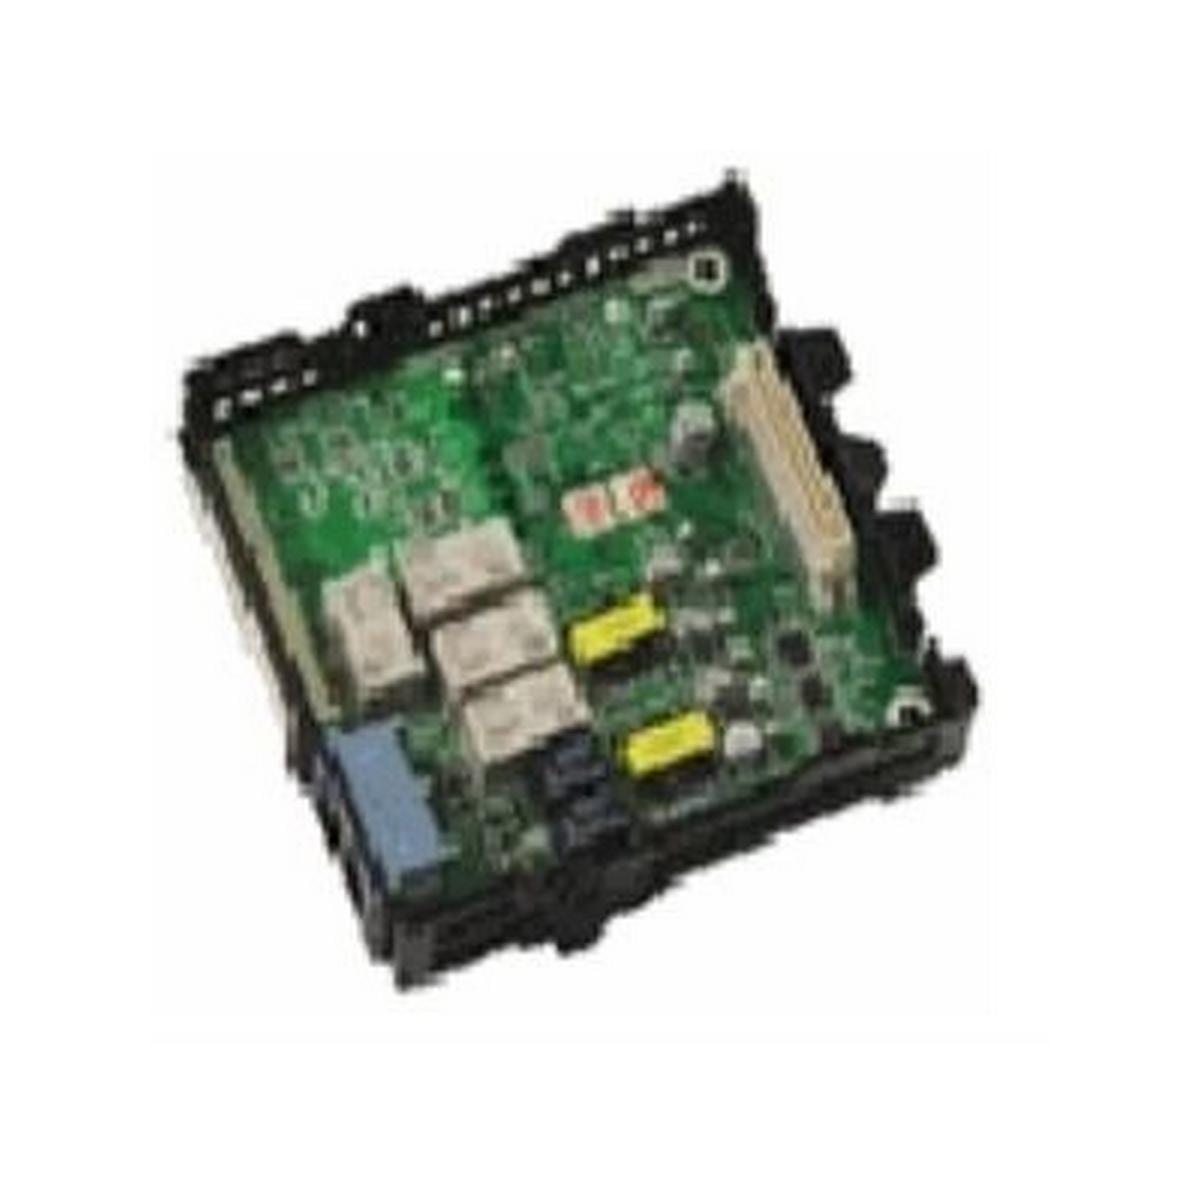 Panasonic KX-TDA5161 4-PORT DOORPHONE / DOOR OPENER CARD (DPH4)